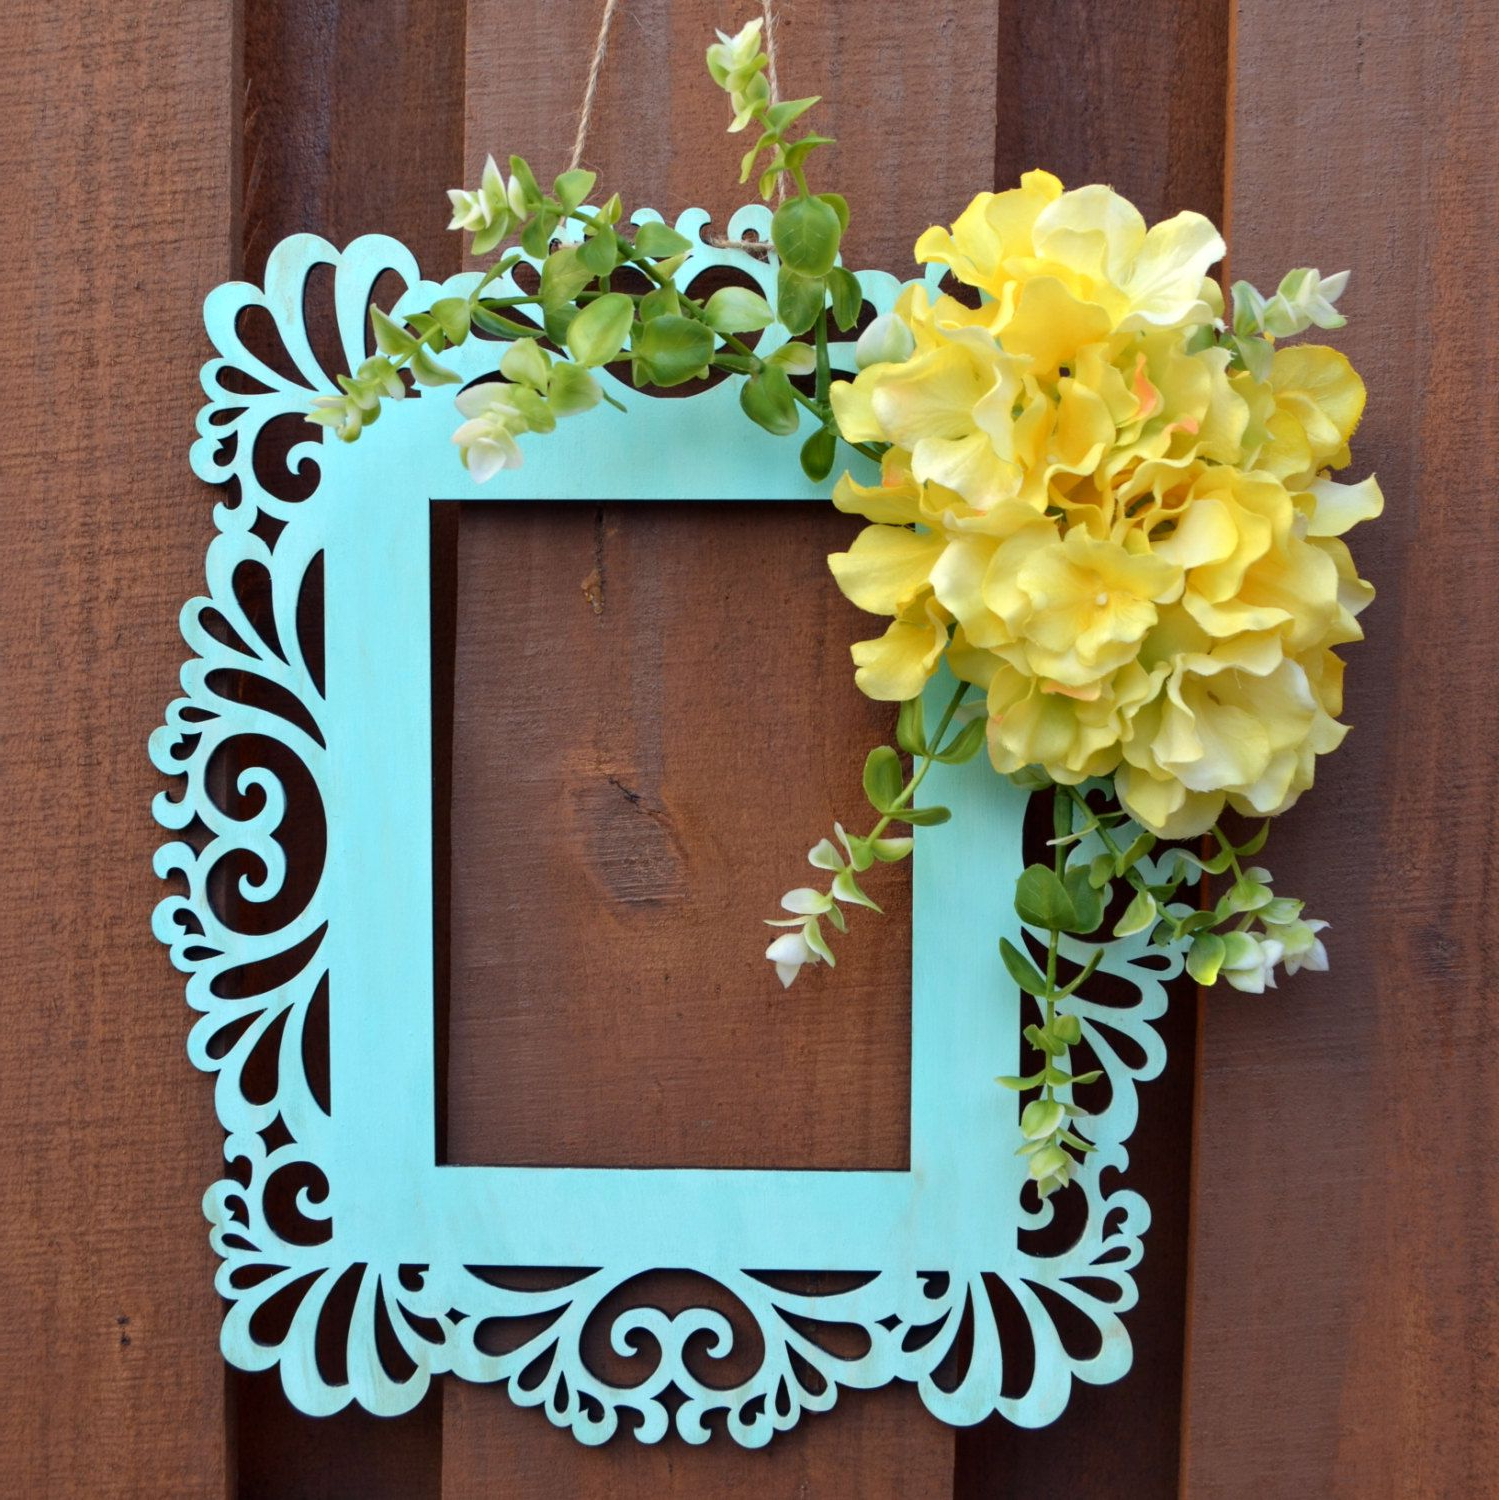 Spring Frame Wreath – Spring Door Hanger – Wall Decor – Frame Wreath In Recent Floral Wreath Wood Framed Wall Decor (View 5 of 20)